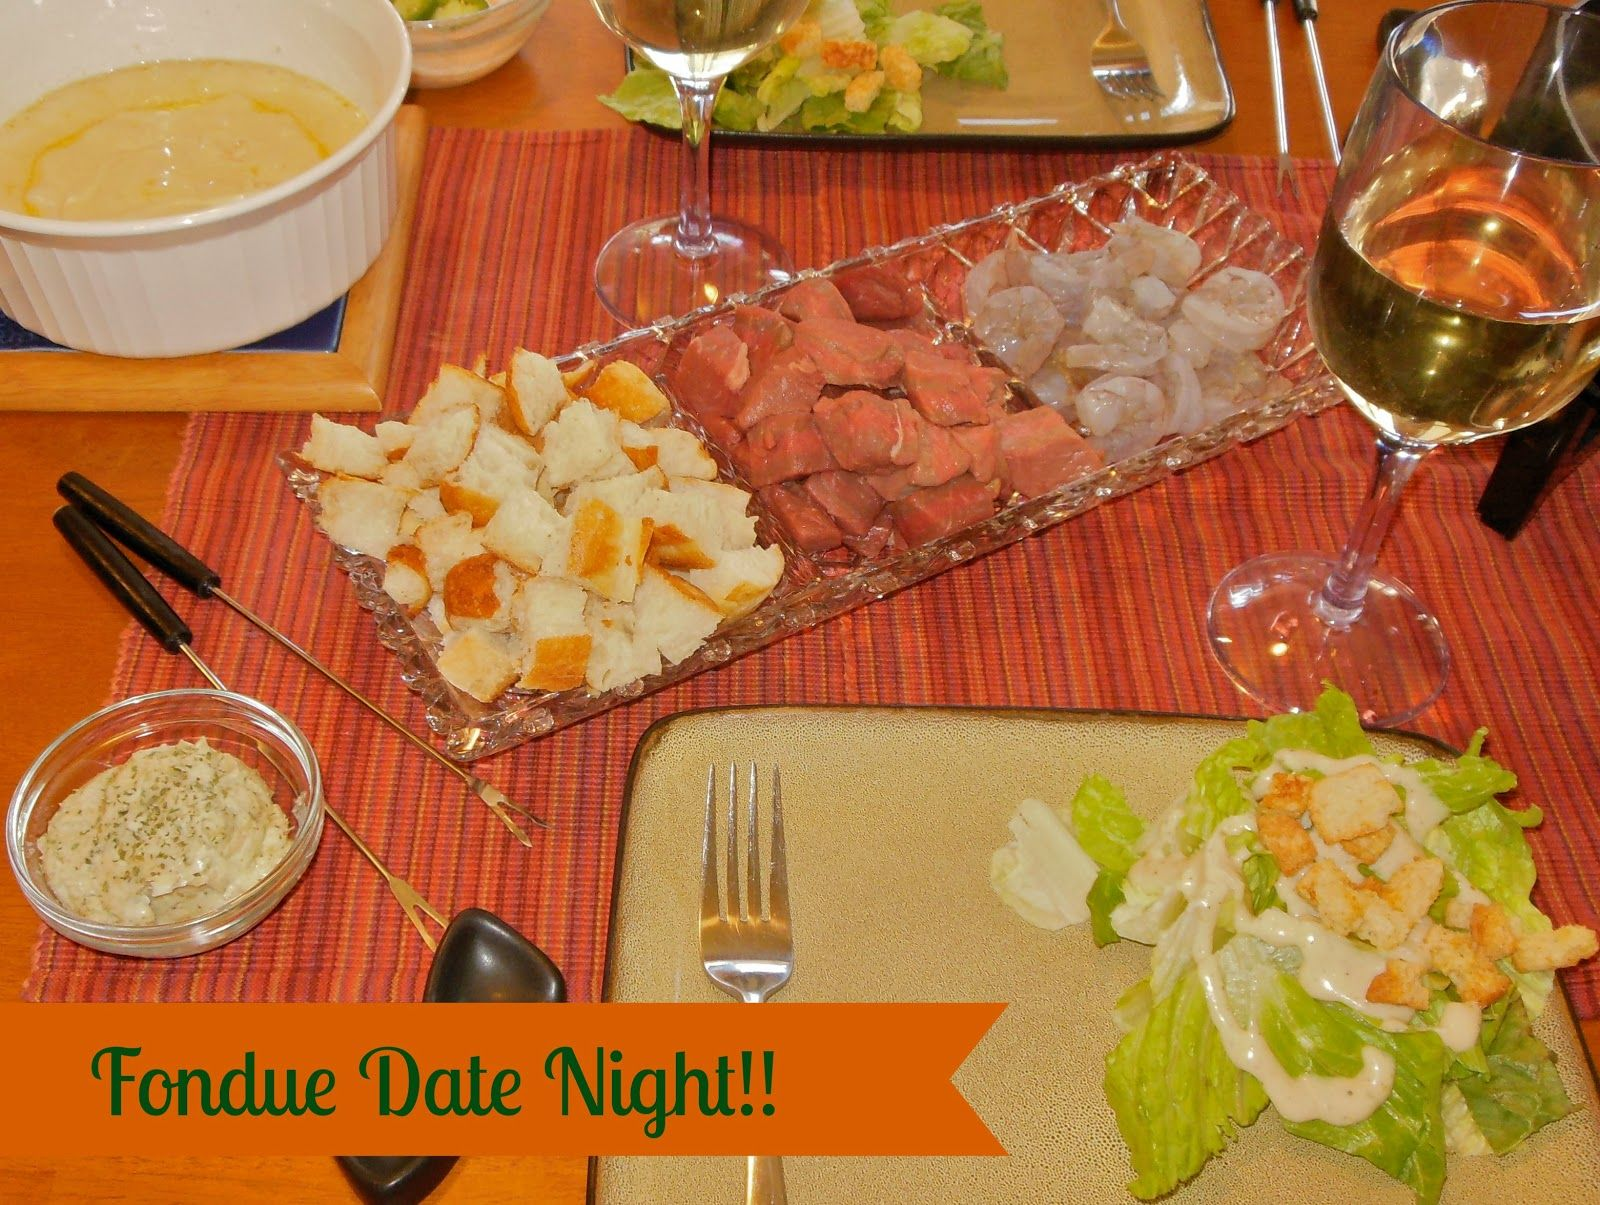 Surf And Turf Dinner Party Ideas Part - 39: How To Have A Romantic Dinner With Surf And Turf Fondue